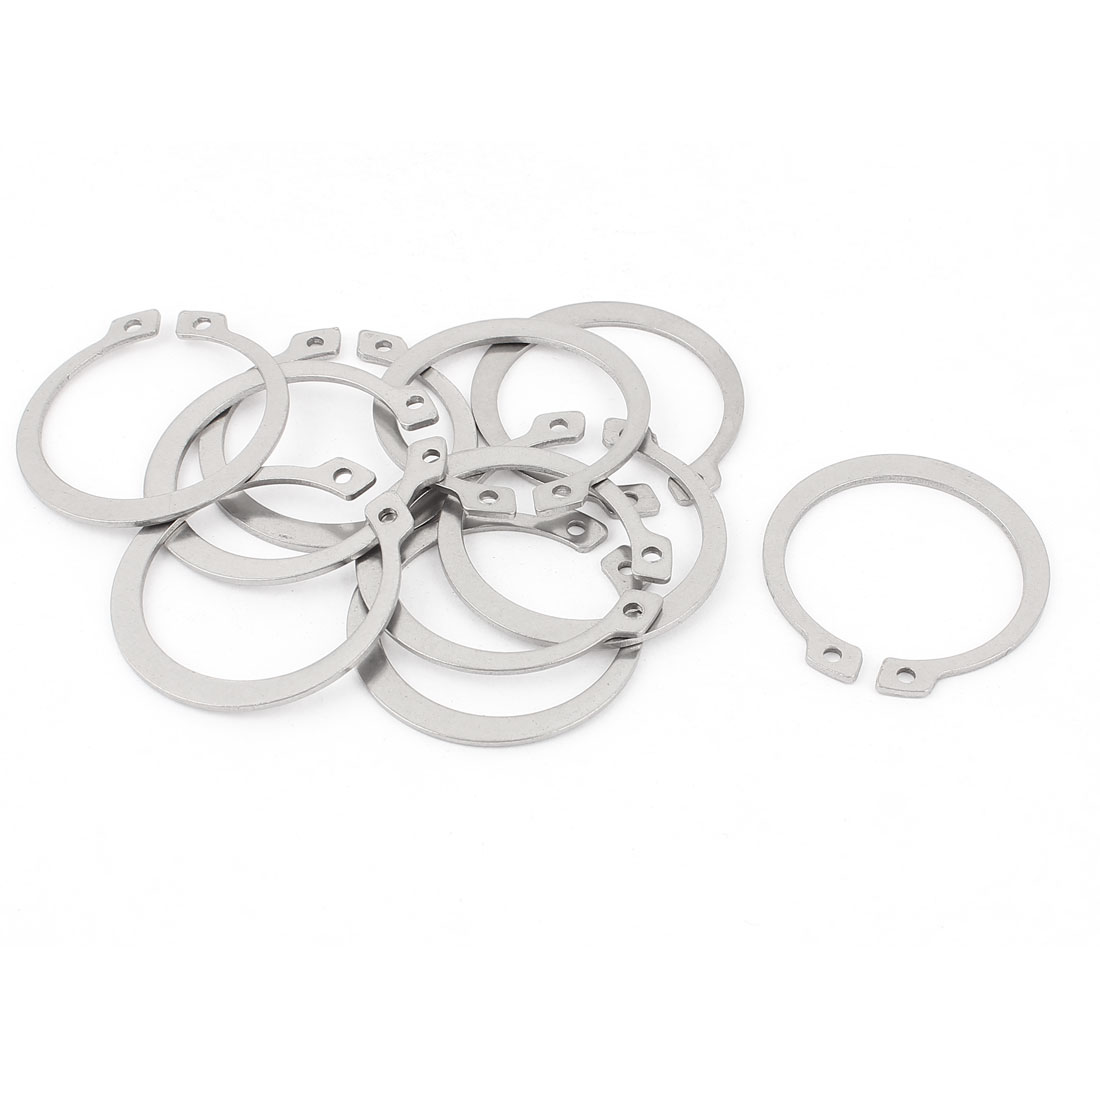 10pcs 304 Stainless Steel External Circlip Retaining Shaft Snap Rings 40mm